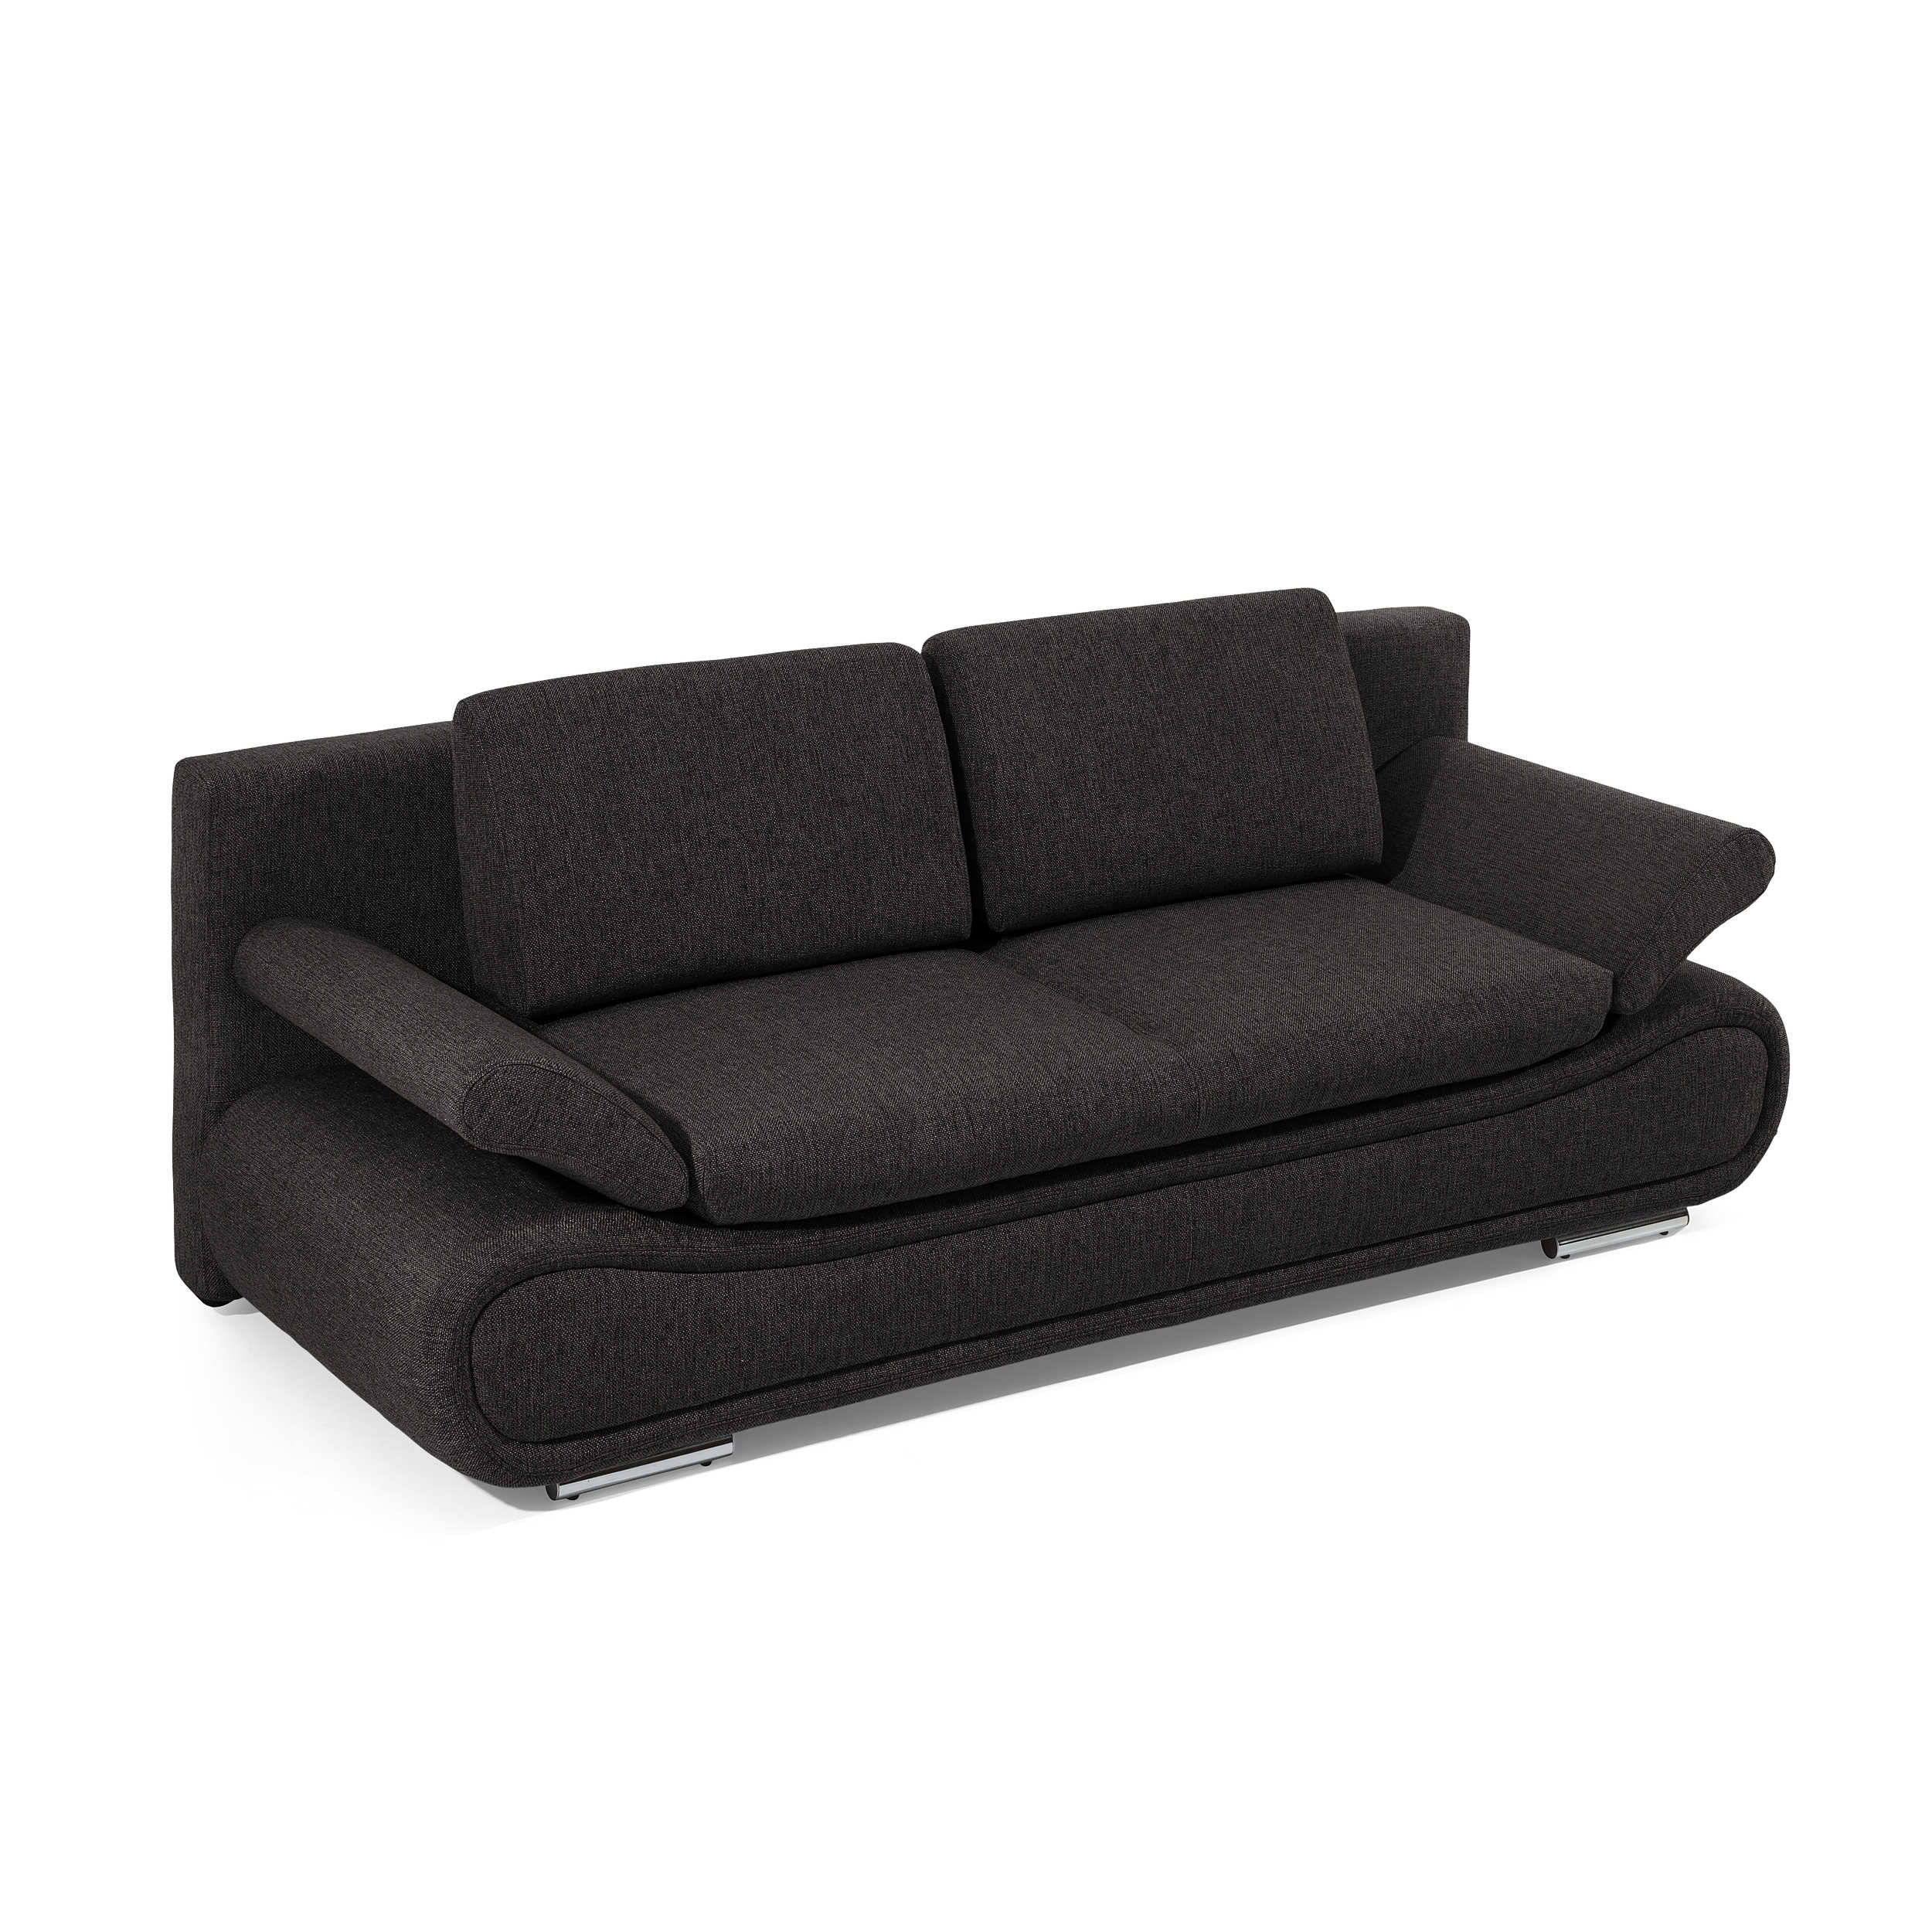 schlafsofa verena schwarz stoff online kaufen bei woonio. Black Bedroom Furniture Sets. Home Design Ideas